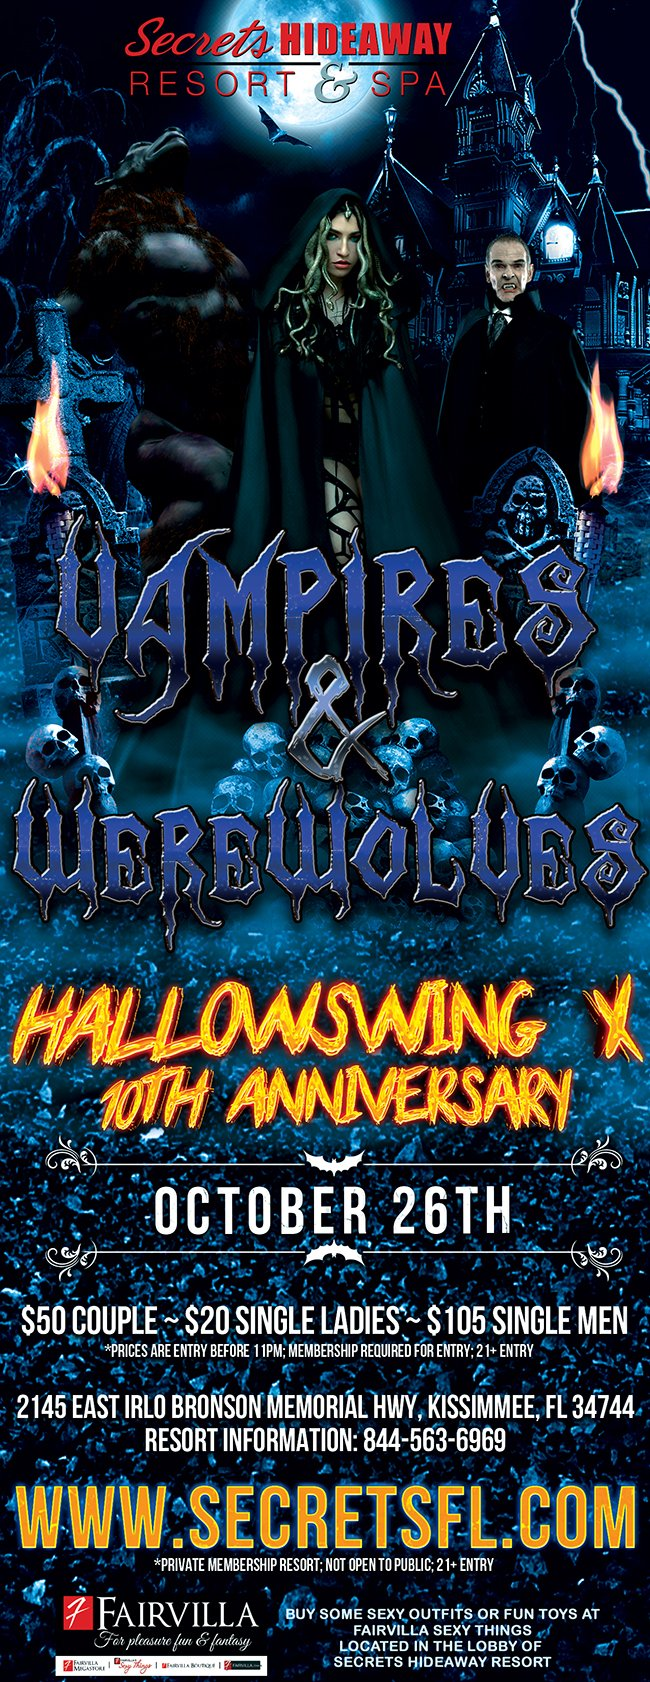 Events - Vampires & Werewolves - Hallowswing X Orlando, Florida Lifestyle and Swinger Parties